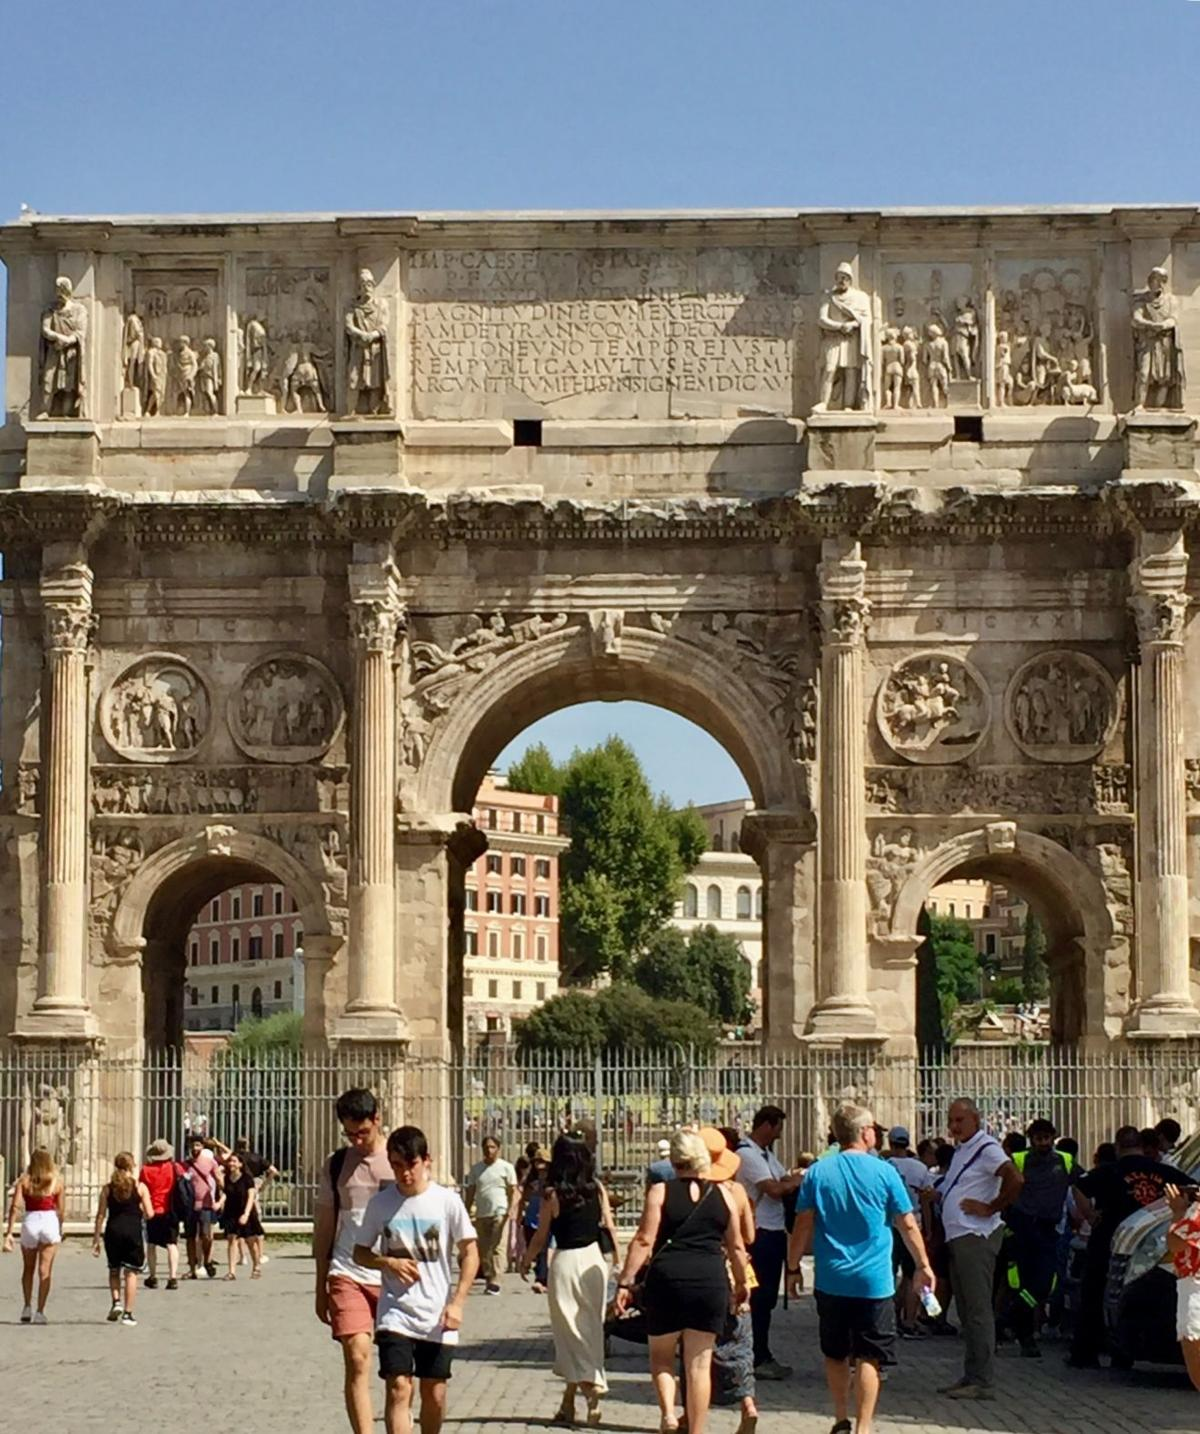 The Constantine Arch